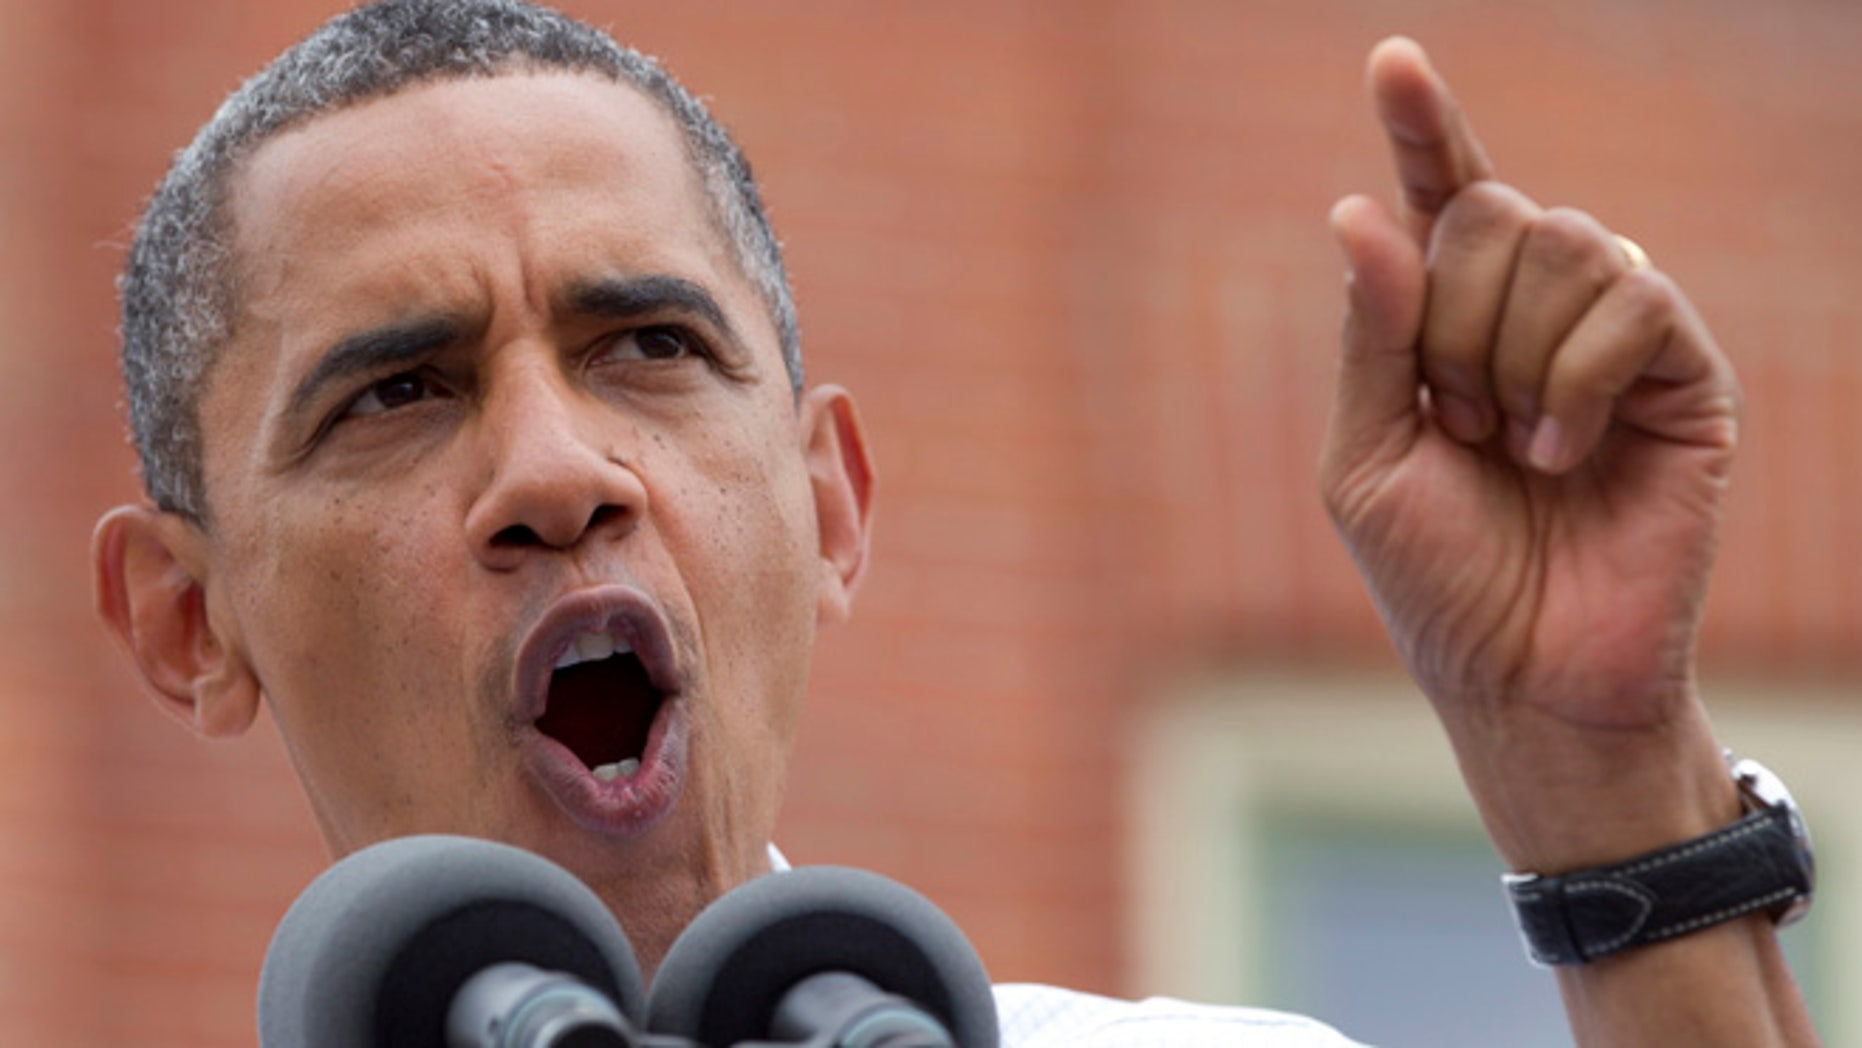 Aug. 15, 2012: President Obama speaks at a campaign event at the Alliant Energy Amphitheater in Dubuque, Iowa.